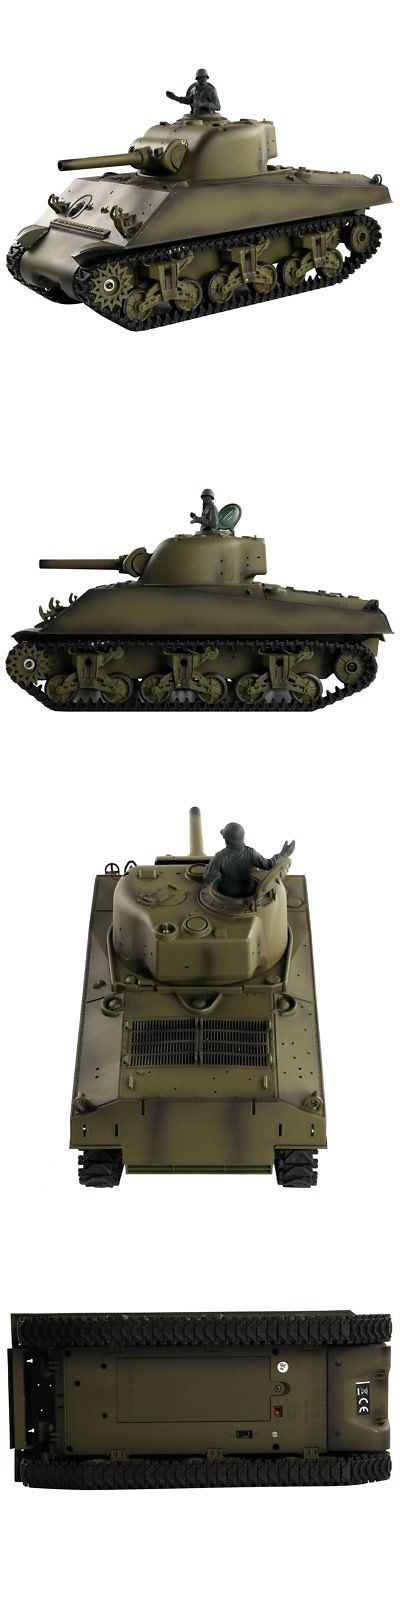 Tanks and Military Vehicles 45986: Costzon 1:16 2.4G Us M4a3 Sherman Rc Tank W Smoke And Sound Radio Remote Control -> BUY IT NOW ONLY: $118.19 on eBay!